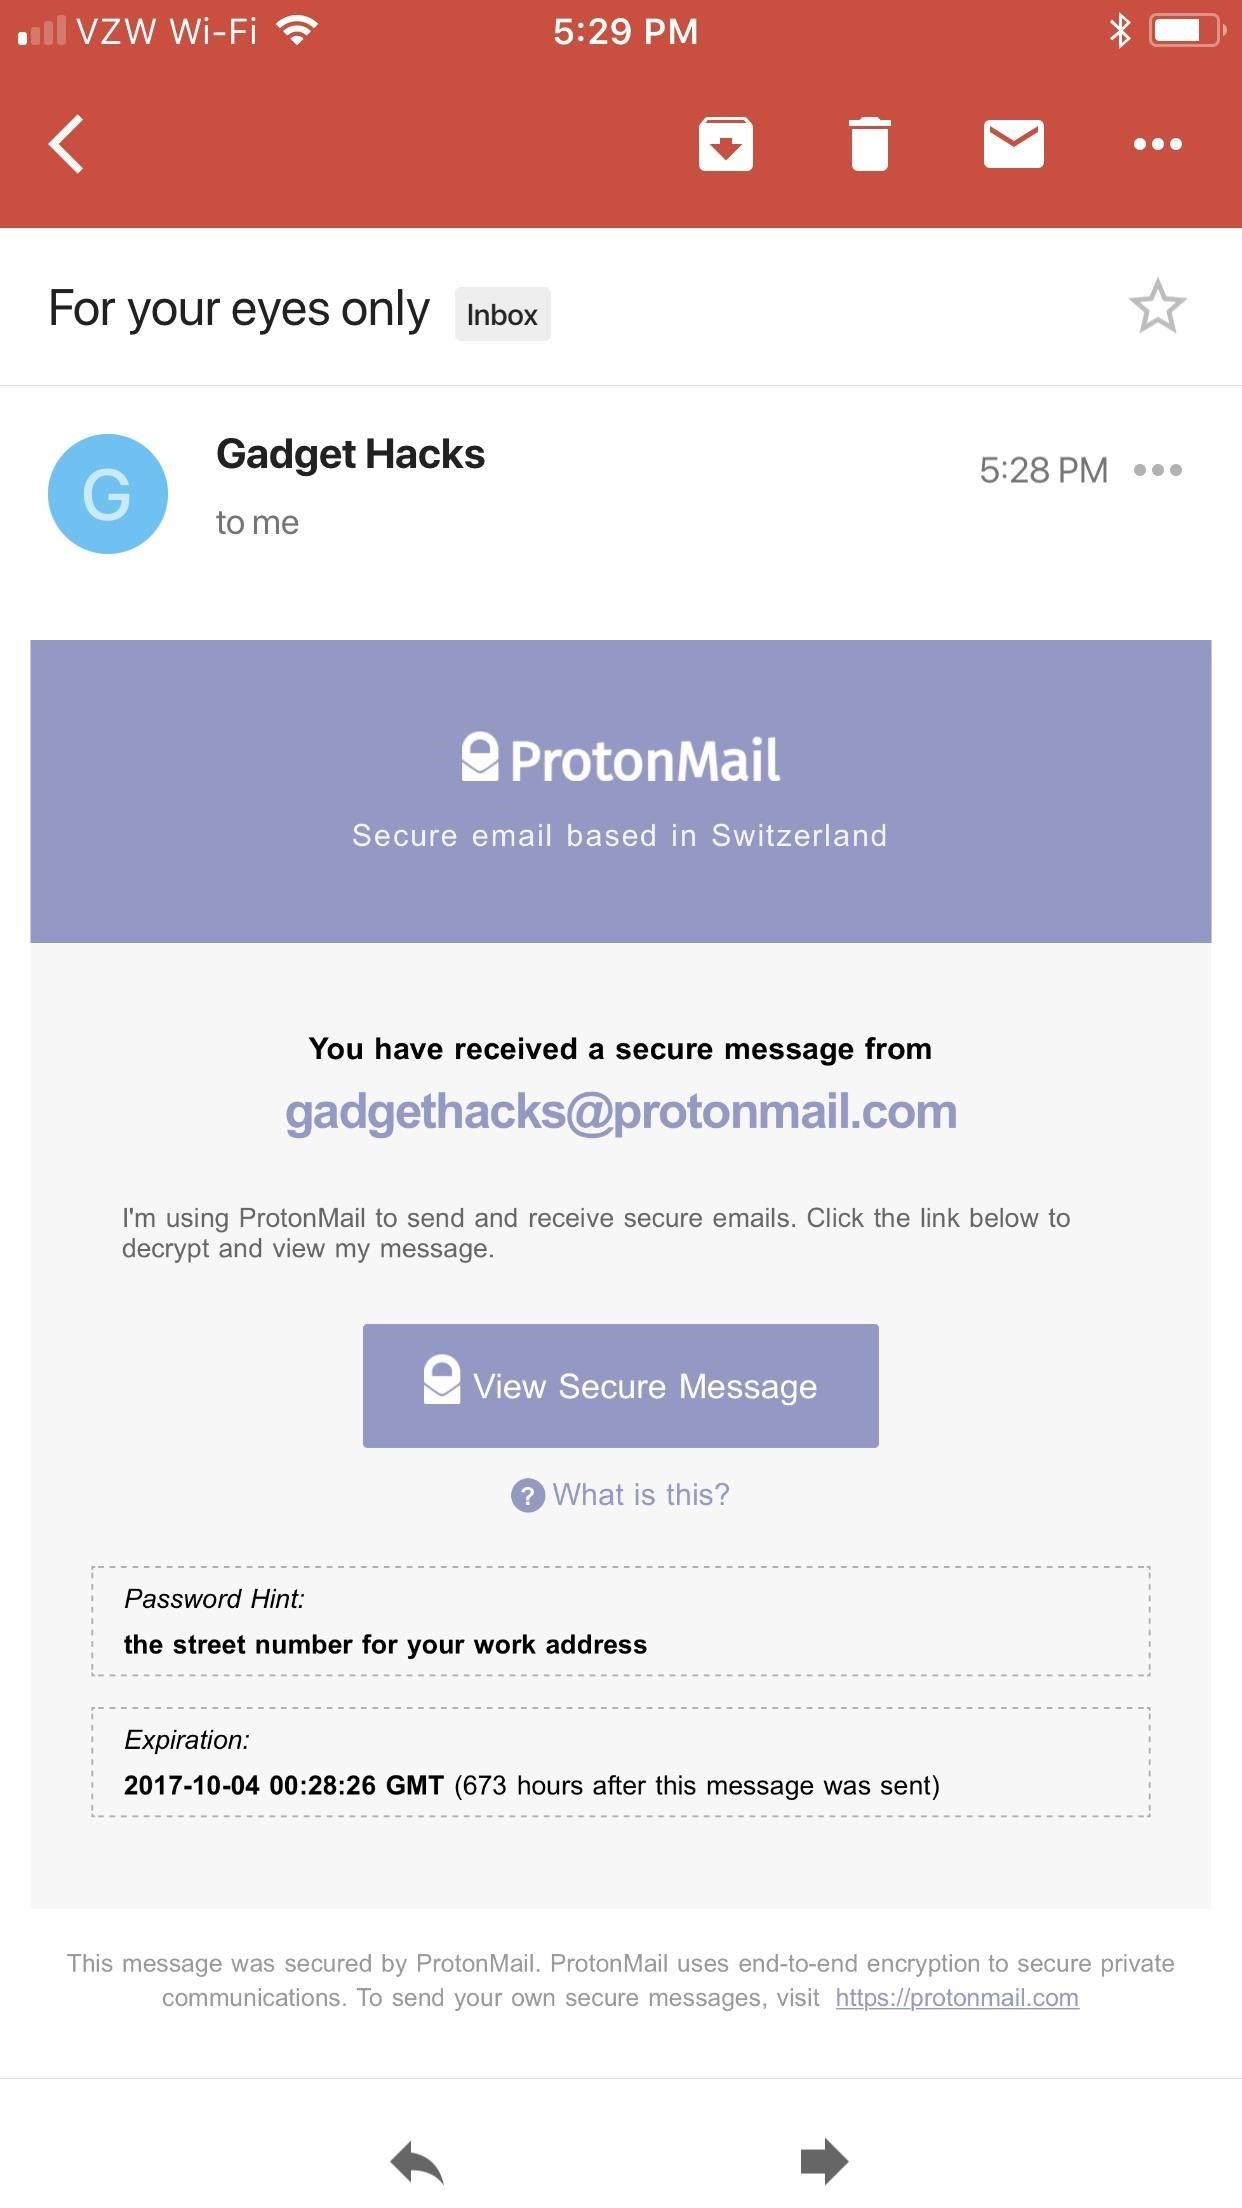 ProtonMail 101: How to Send End-to-End Encrypted Emails to Non-ProtonMail Recipients